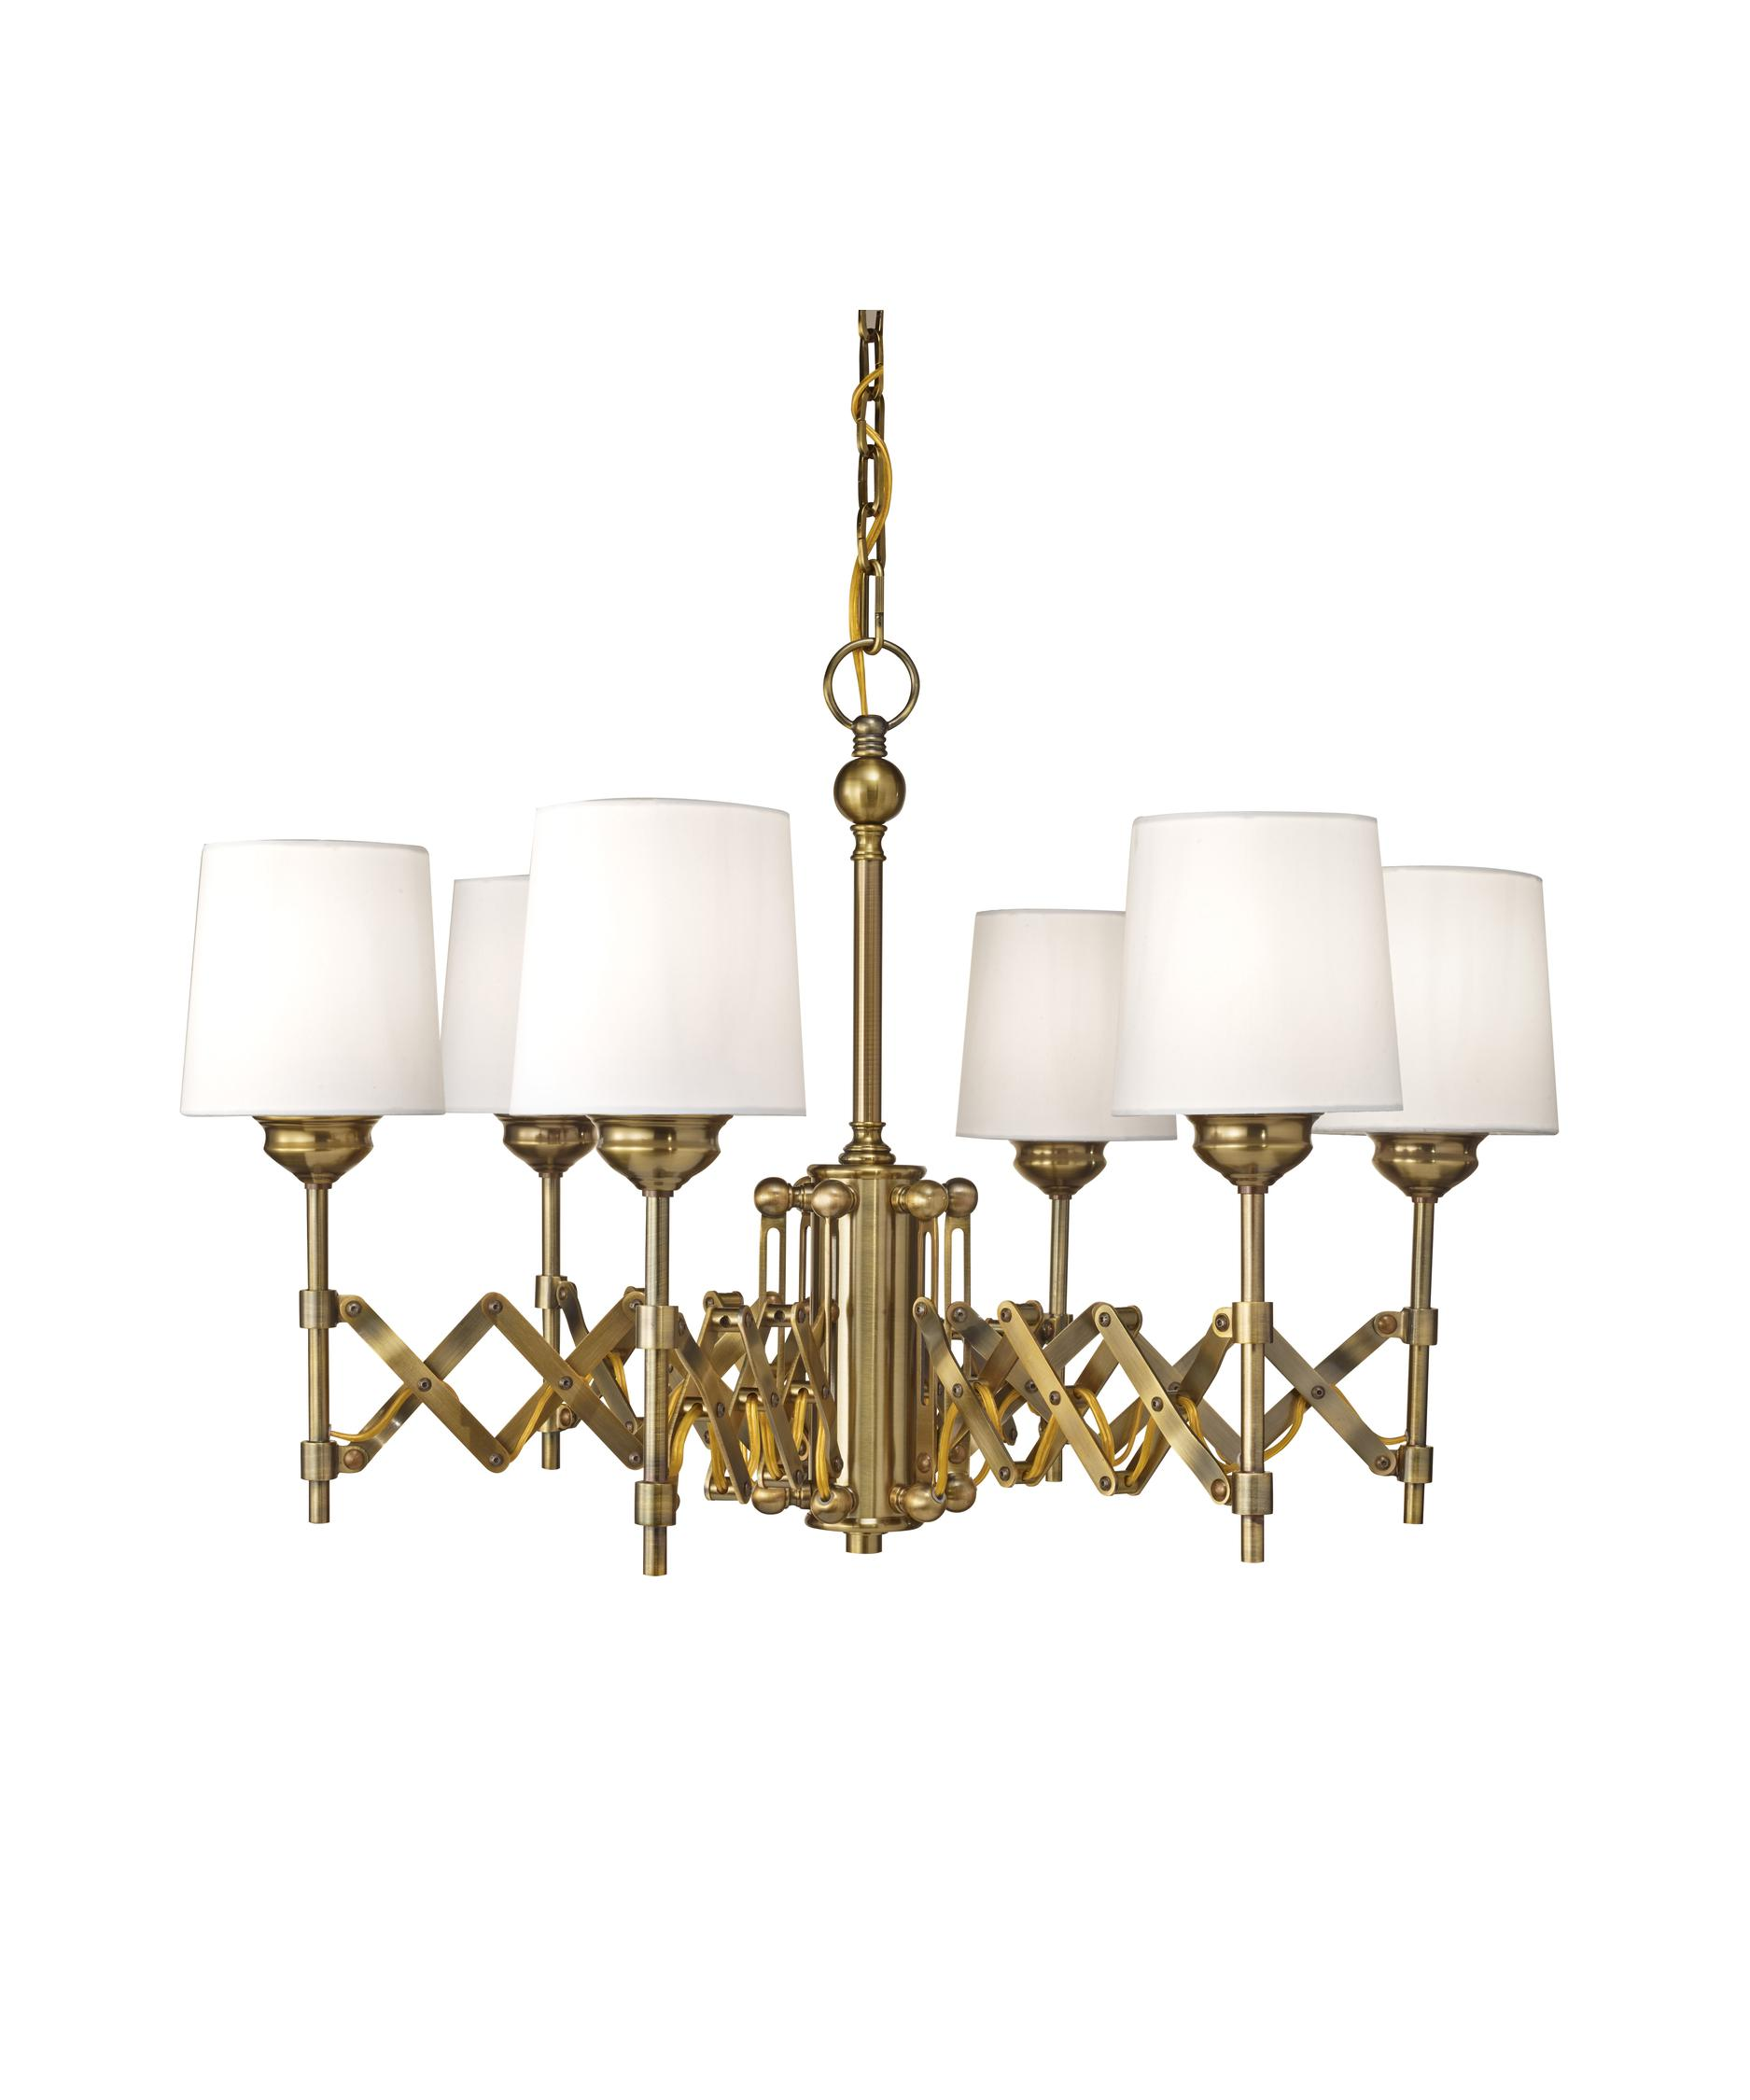 Murray Feiss Hugo 30 Inch Wide 6 Light Chandelier – Murray Feiss Chandeliers